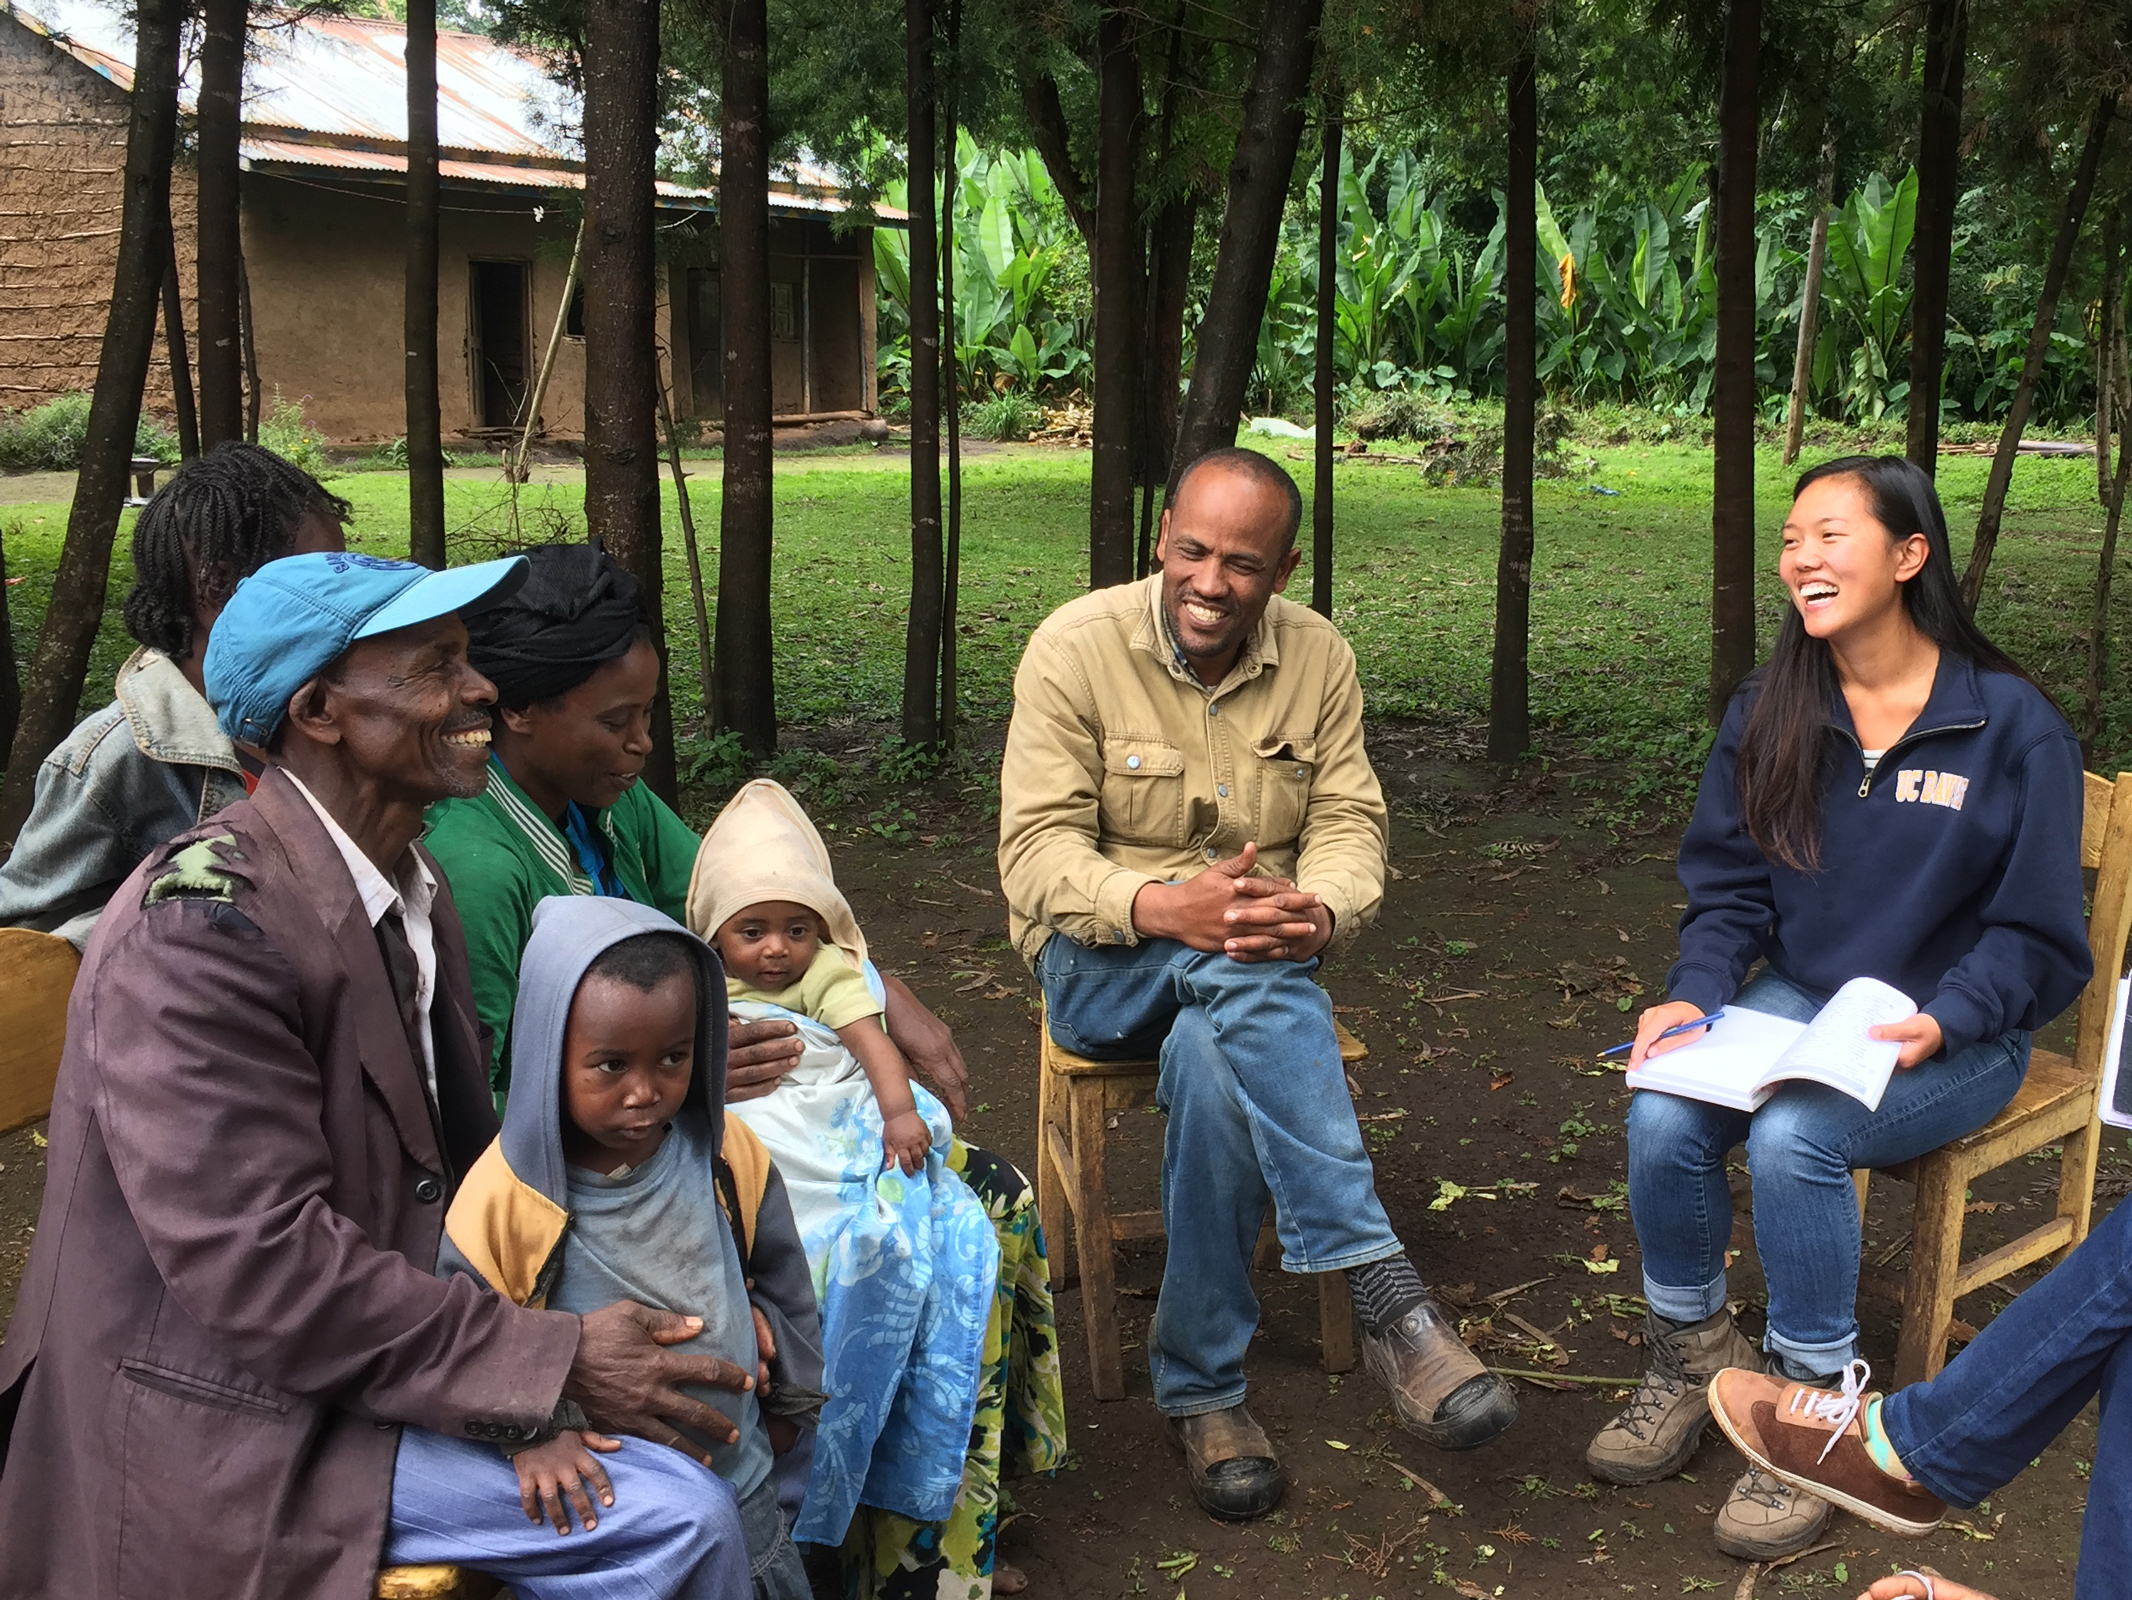 Seated outside in Ethiopia, group of farmers discusses sweet potato crop with local researchers and a UC Davis student